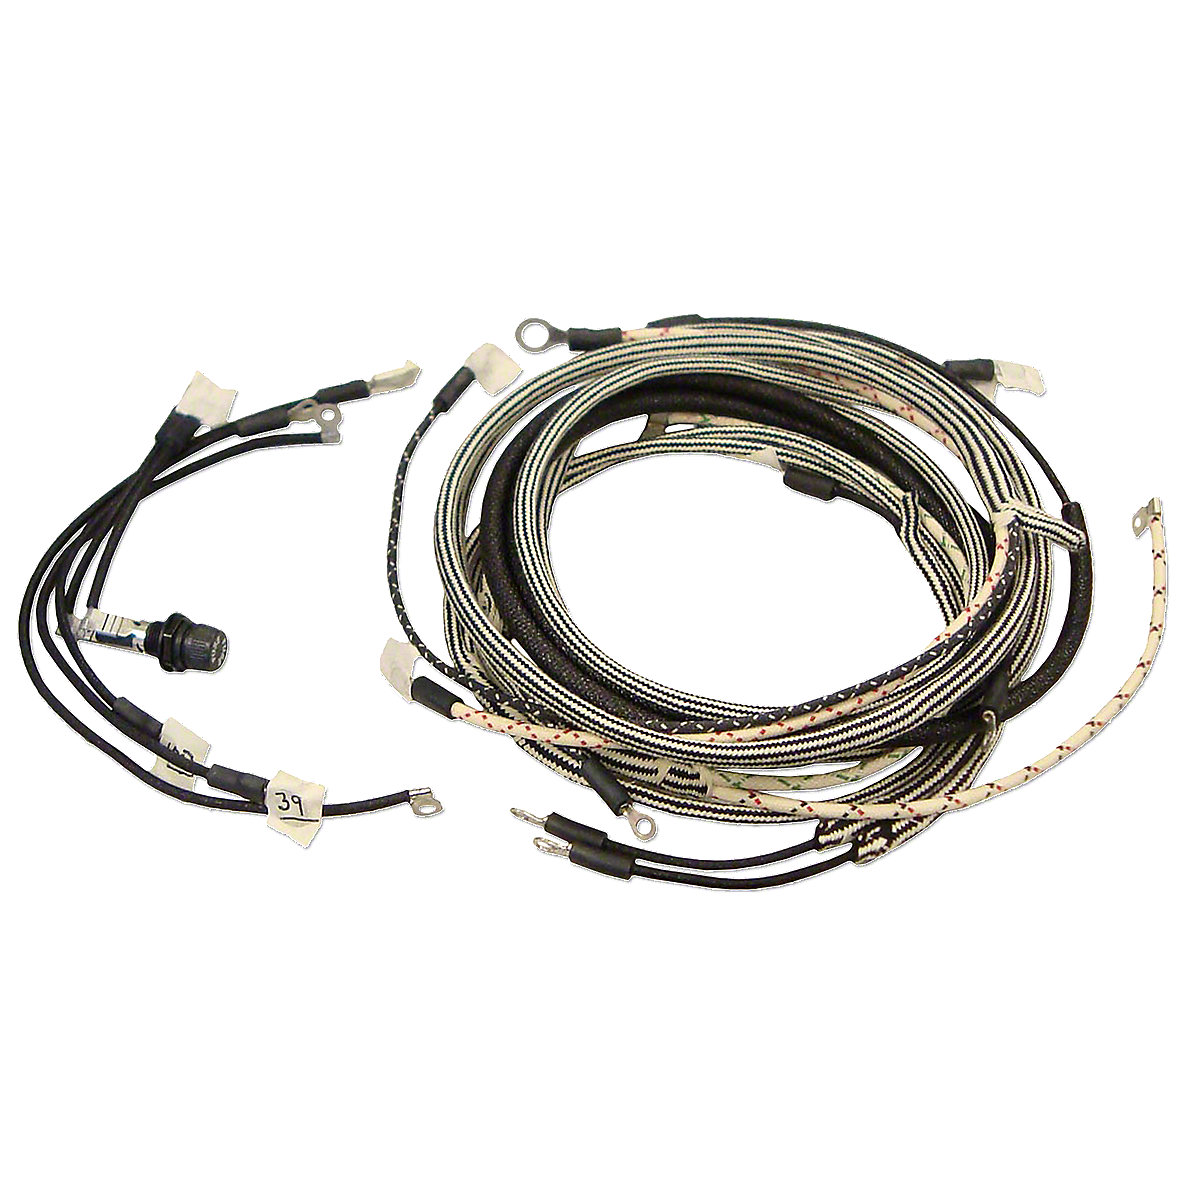 Ihs971 Wire Harness Kit Silver Wiring For Tractors Using 4 Terminal Voltage Regulator